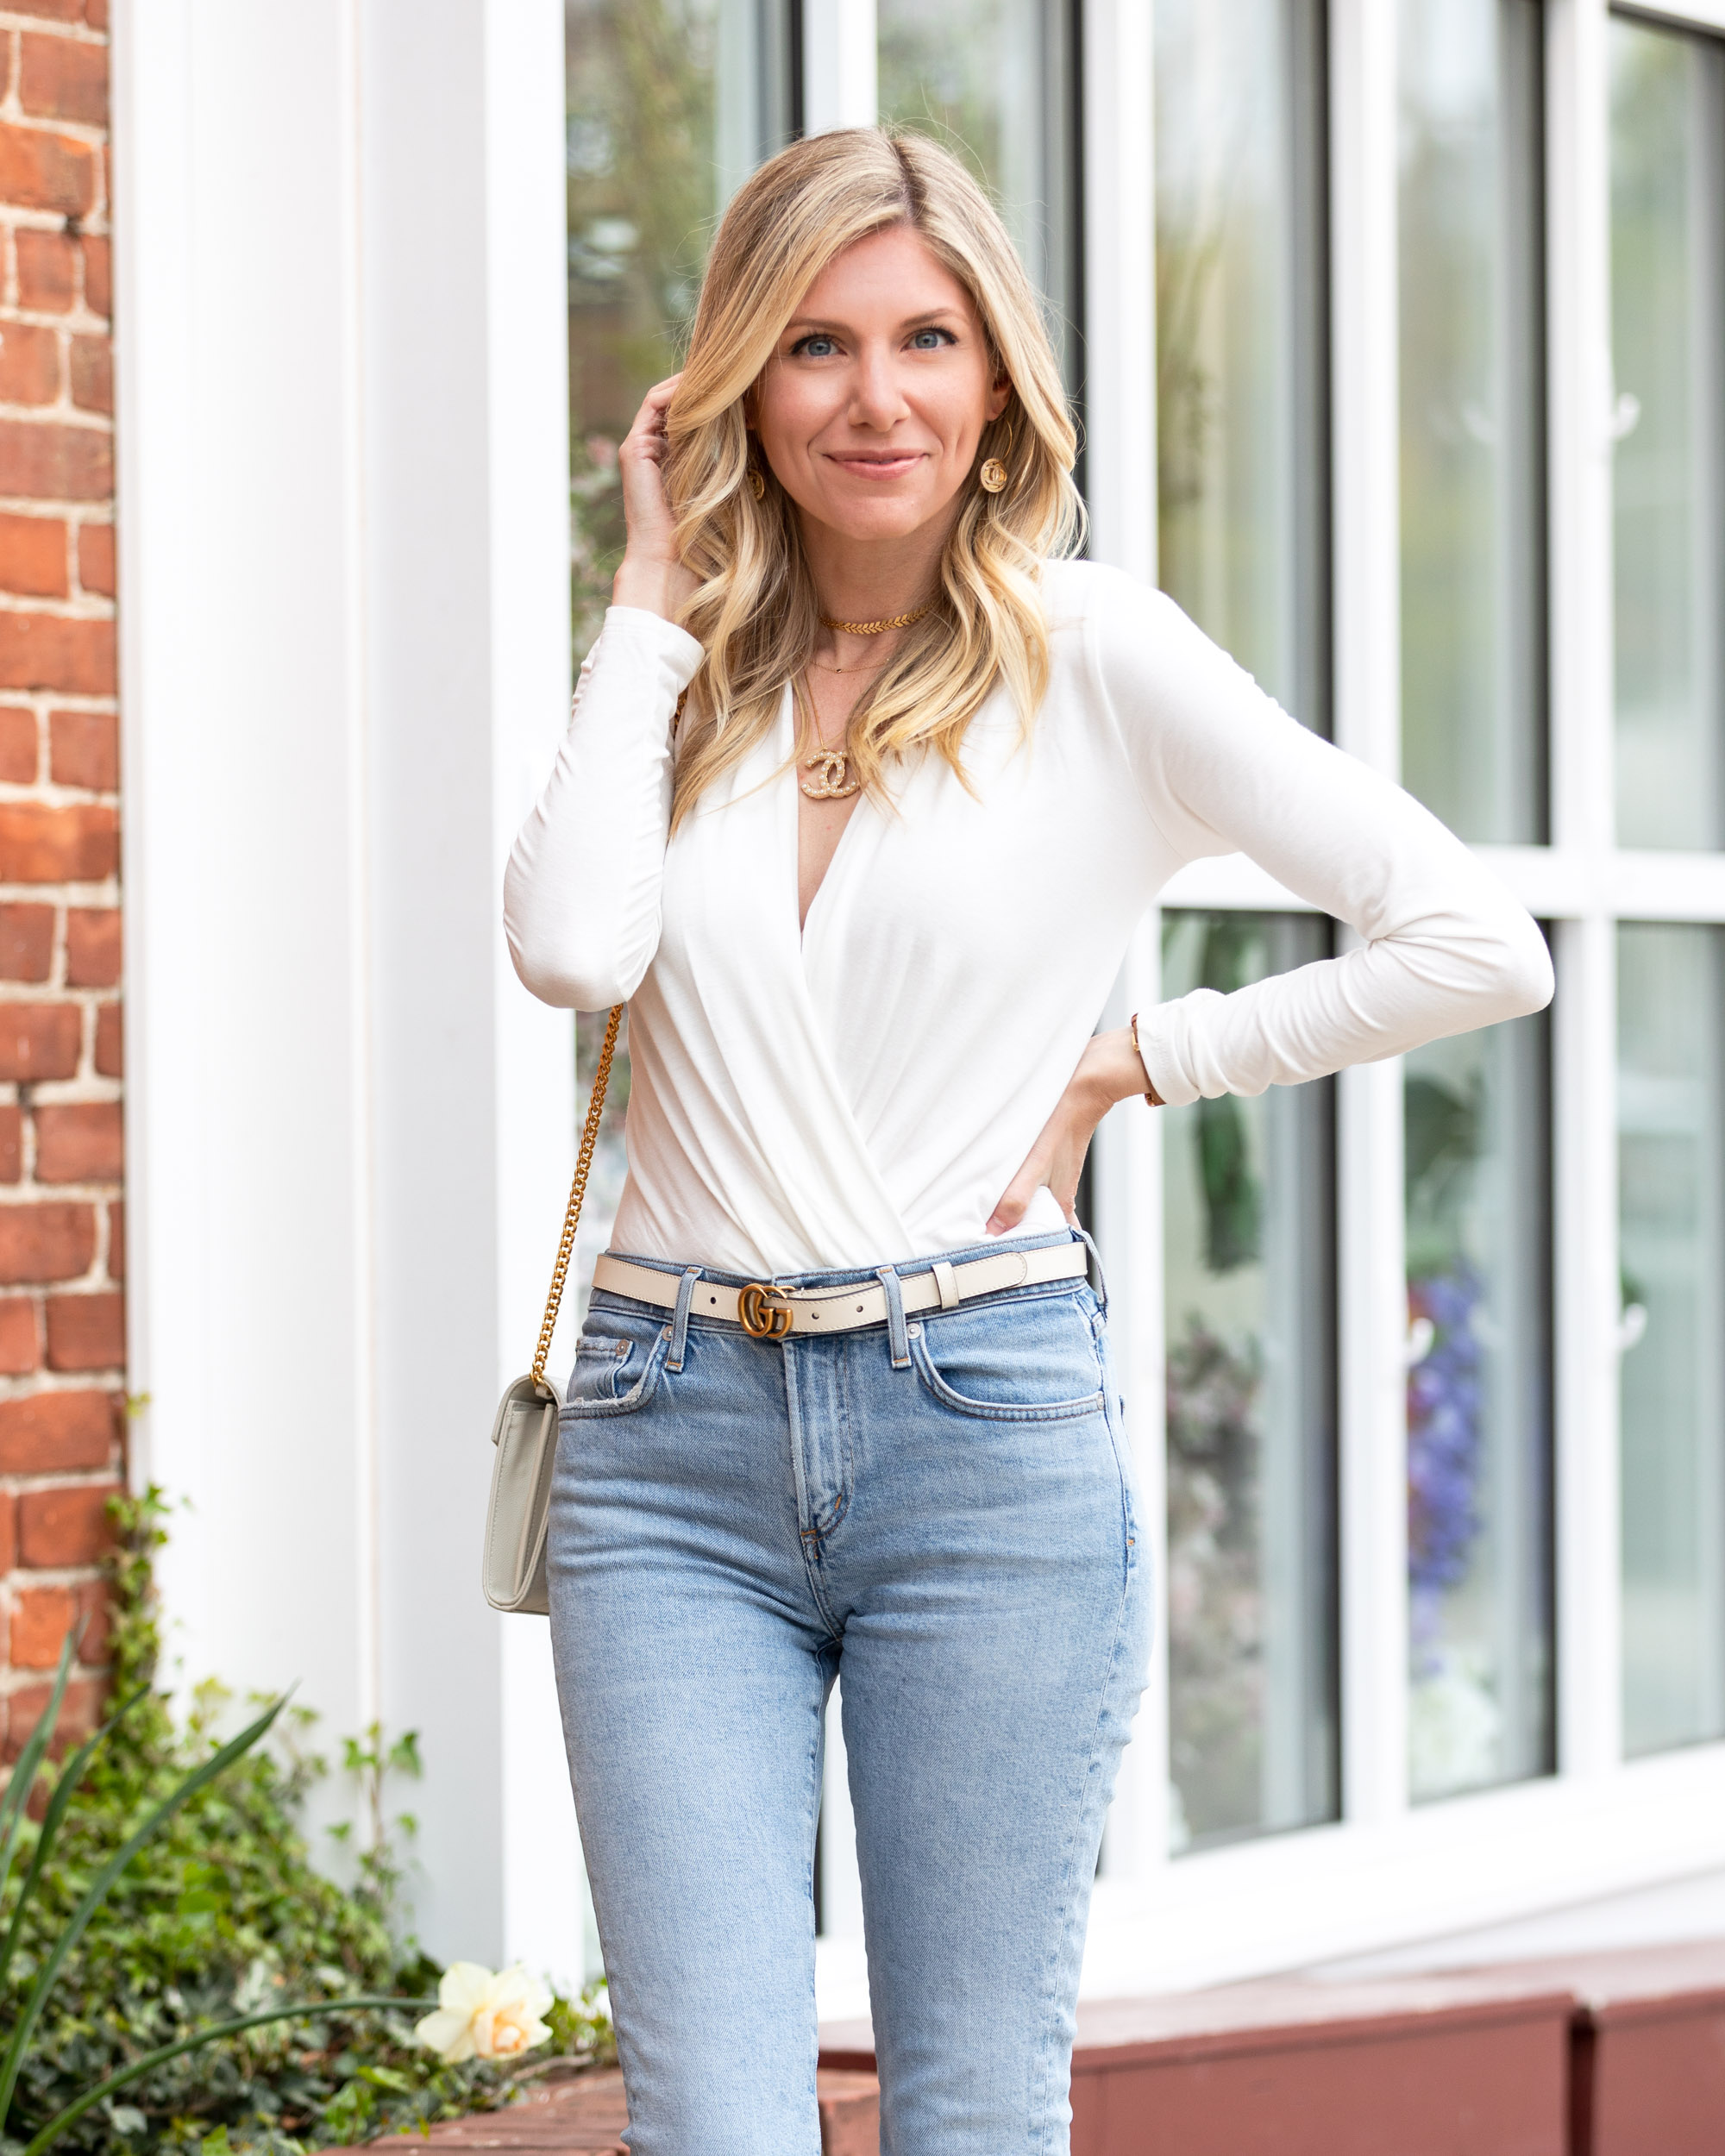 chic-simple-white-look-with-light-wash-denim-the-glamorous-gal